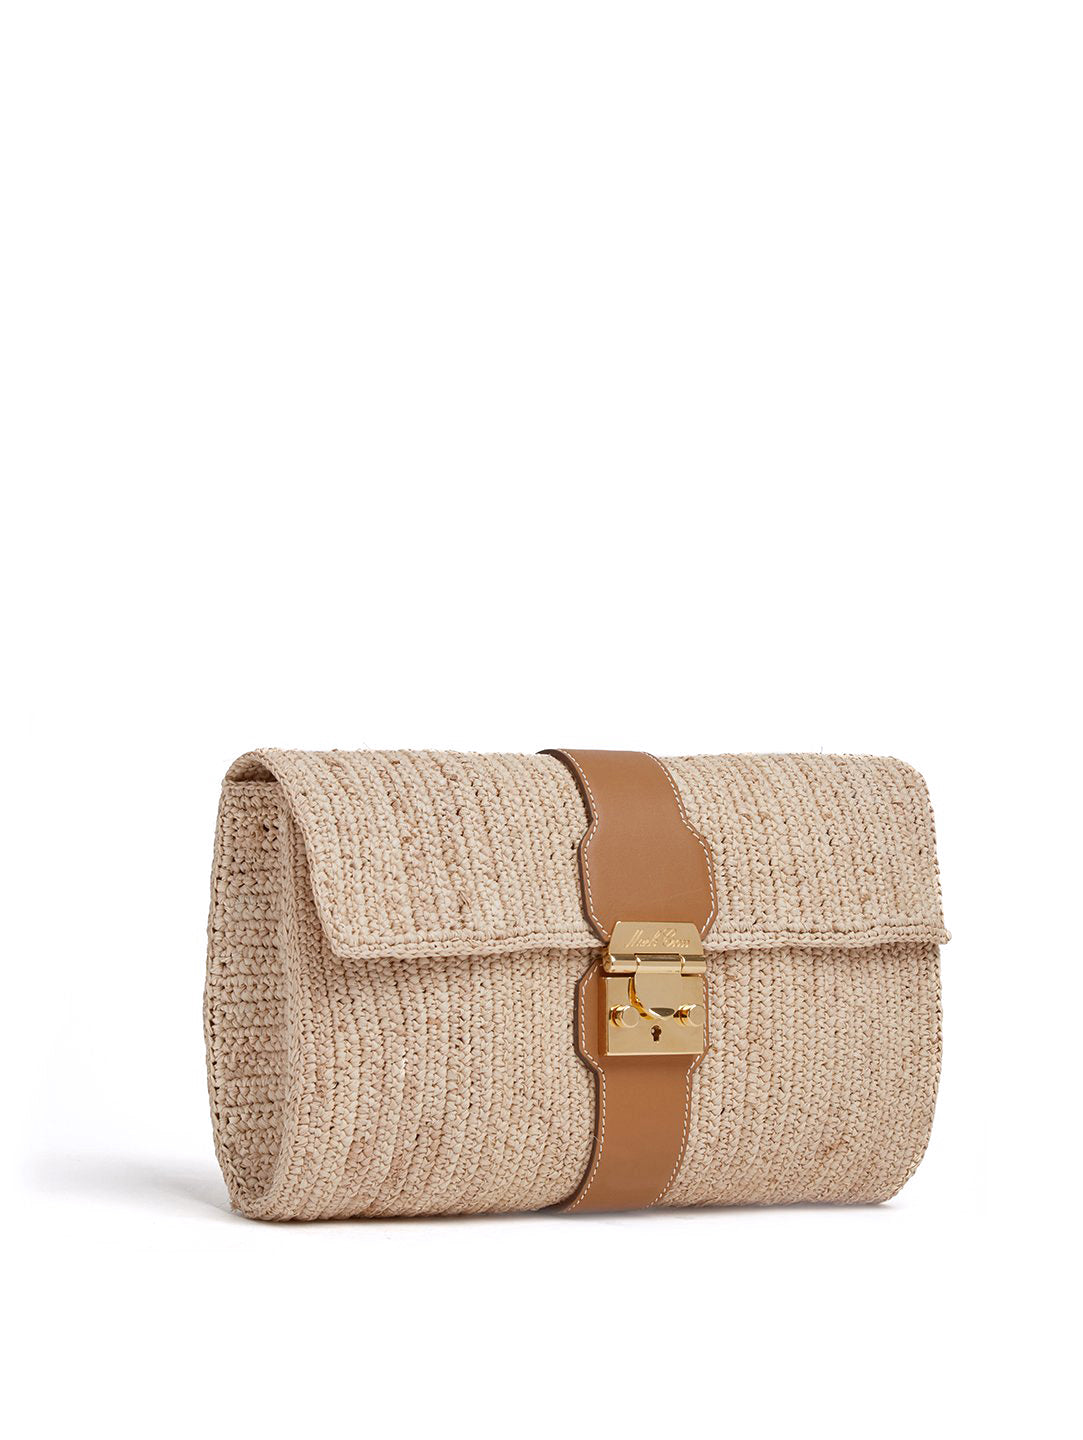 Mark Cross Sylvette Raffia & Leather Clutch Smooth Calf Luggage / Natural Raffia Side